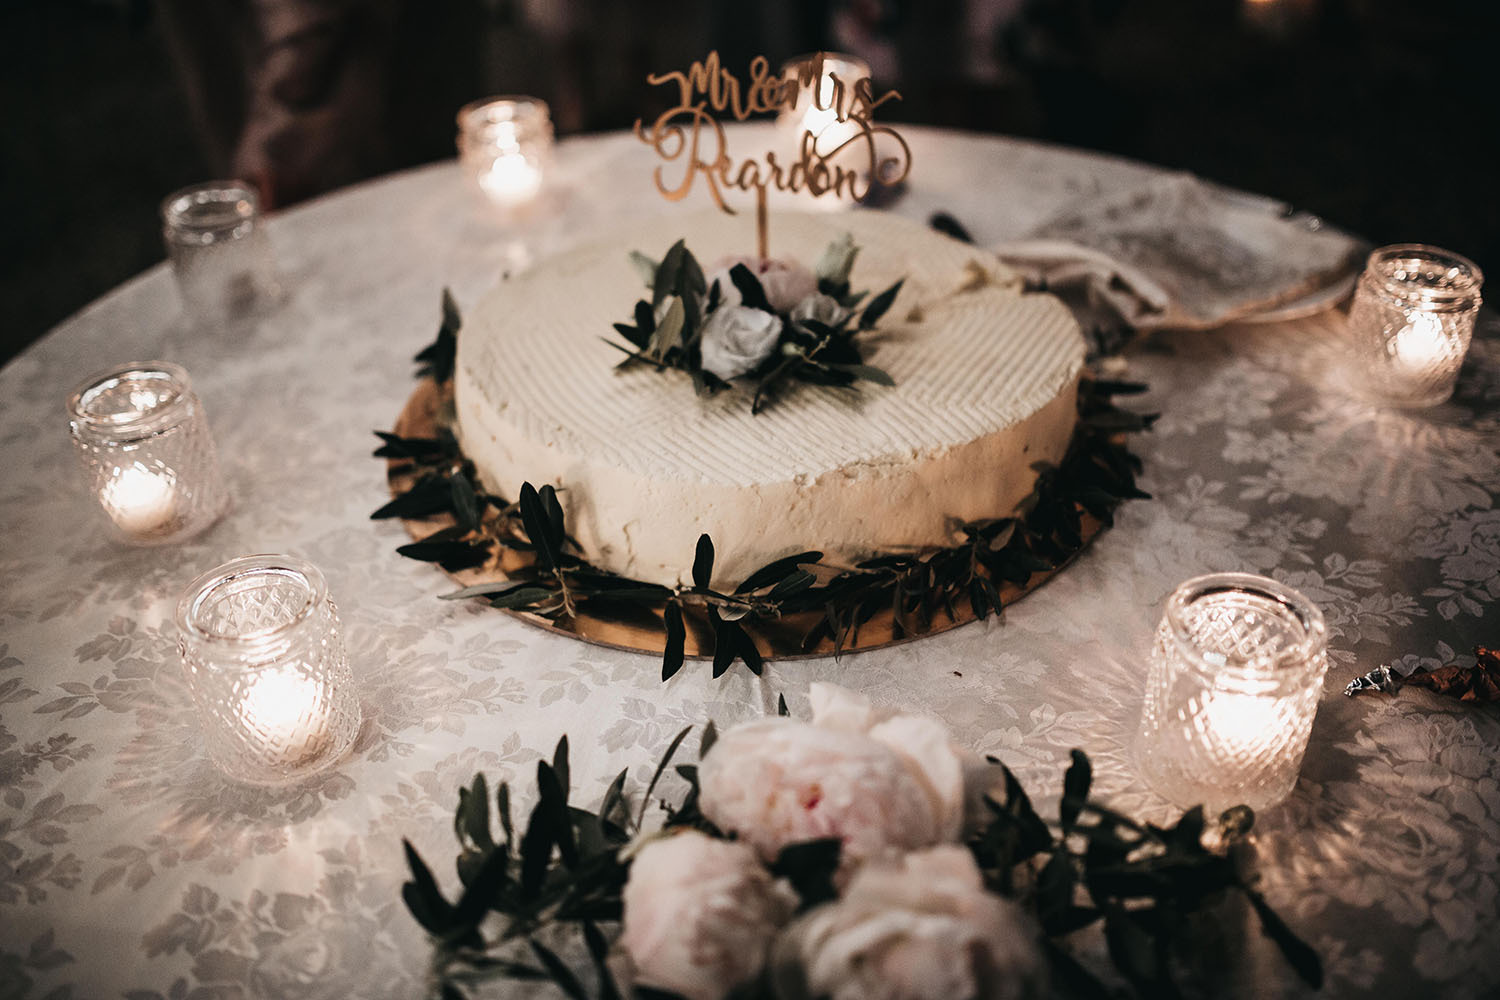 The wedding cake was traditional, covered with white blooms and greenery